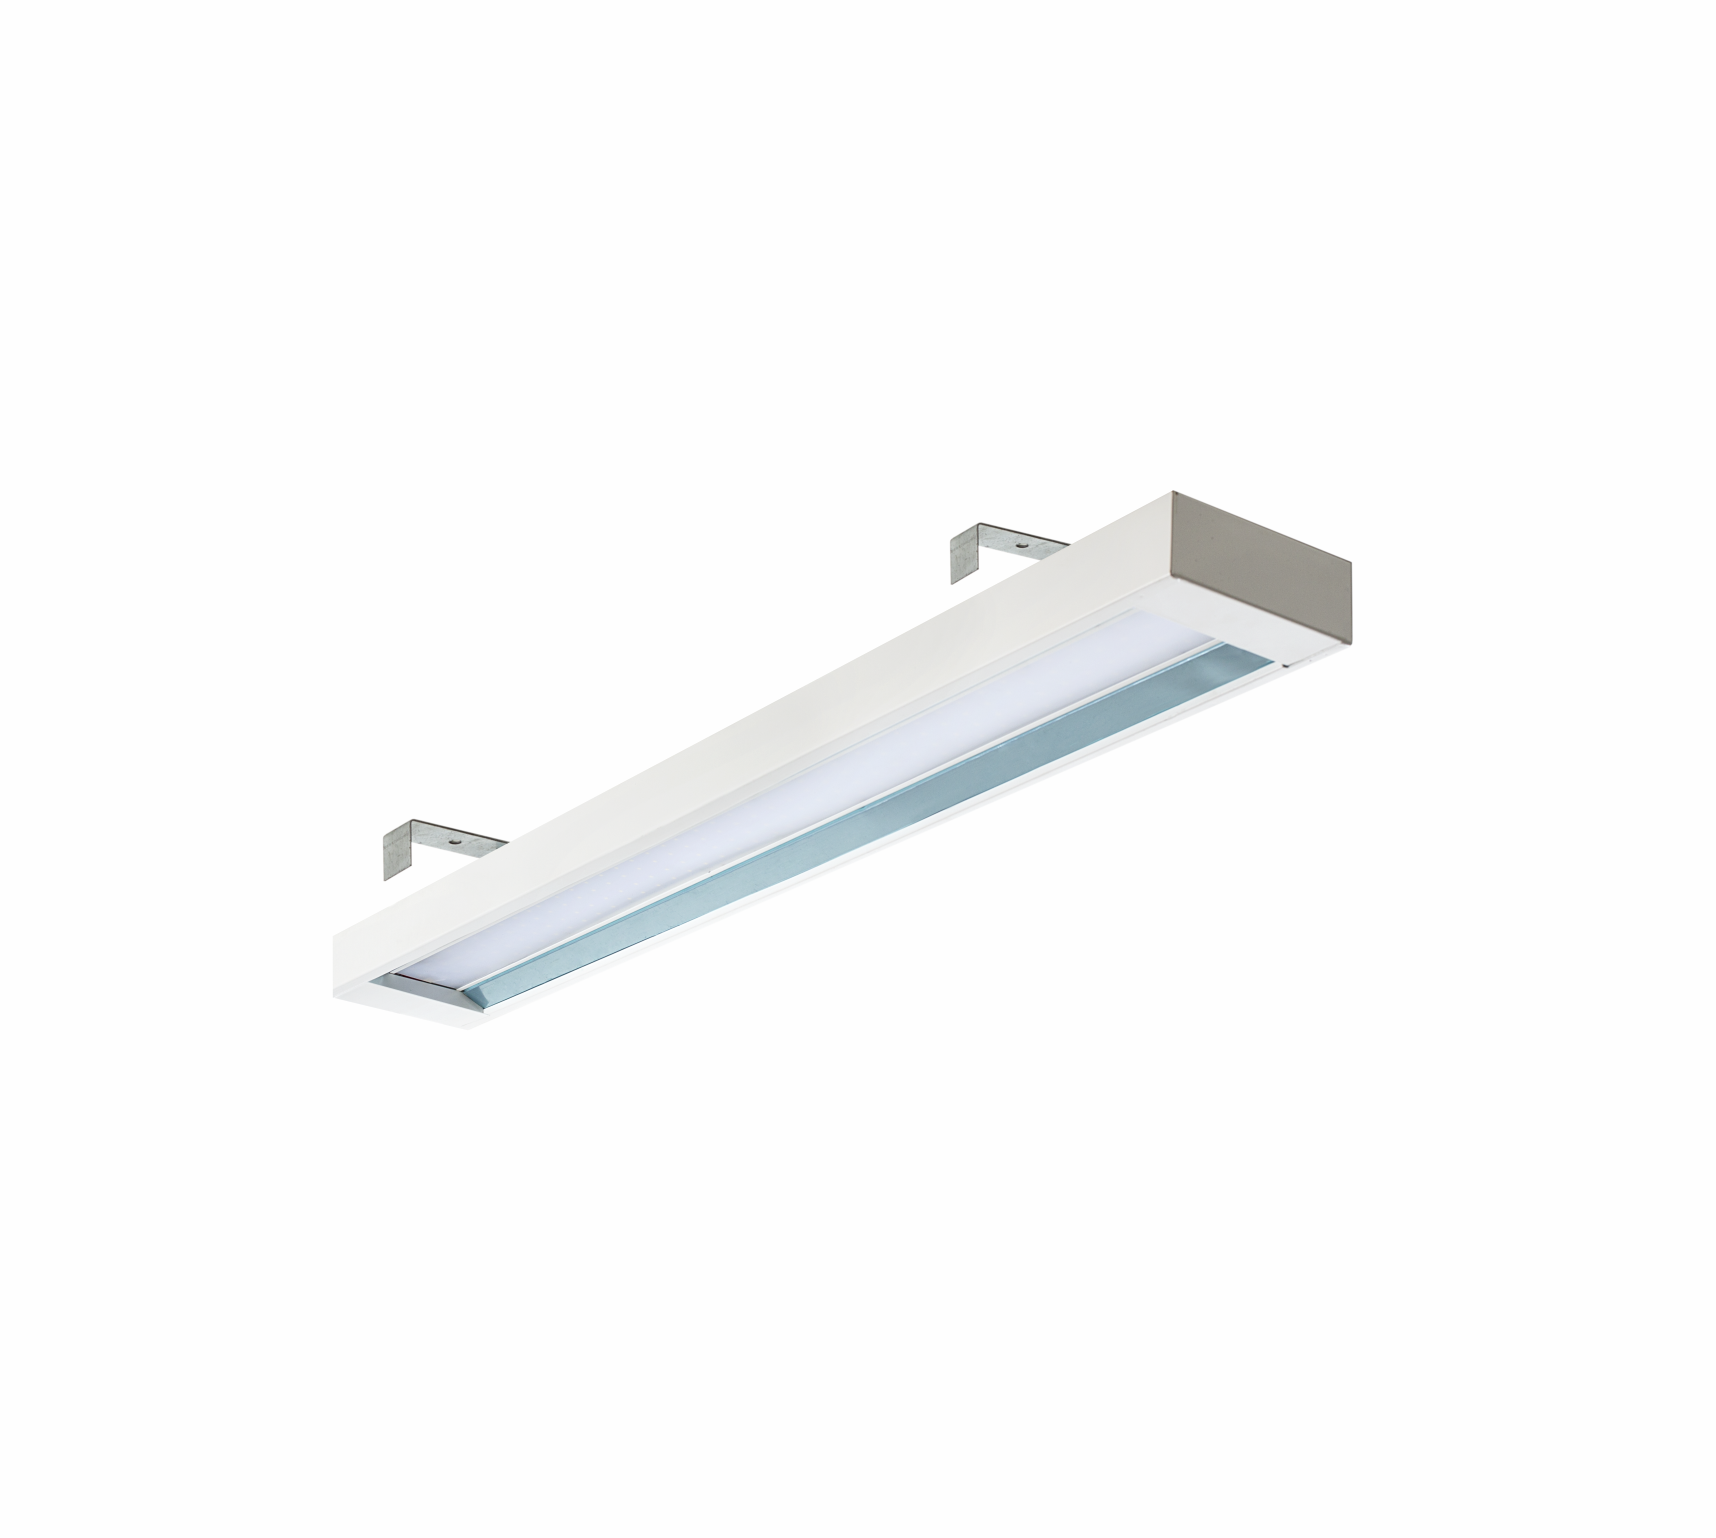 SHOPLIGHTLED-36-60-KS85-GBR-3-ME <span>(caixa)</span><br/>